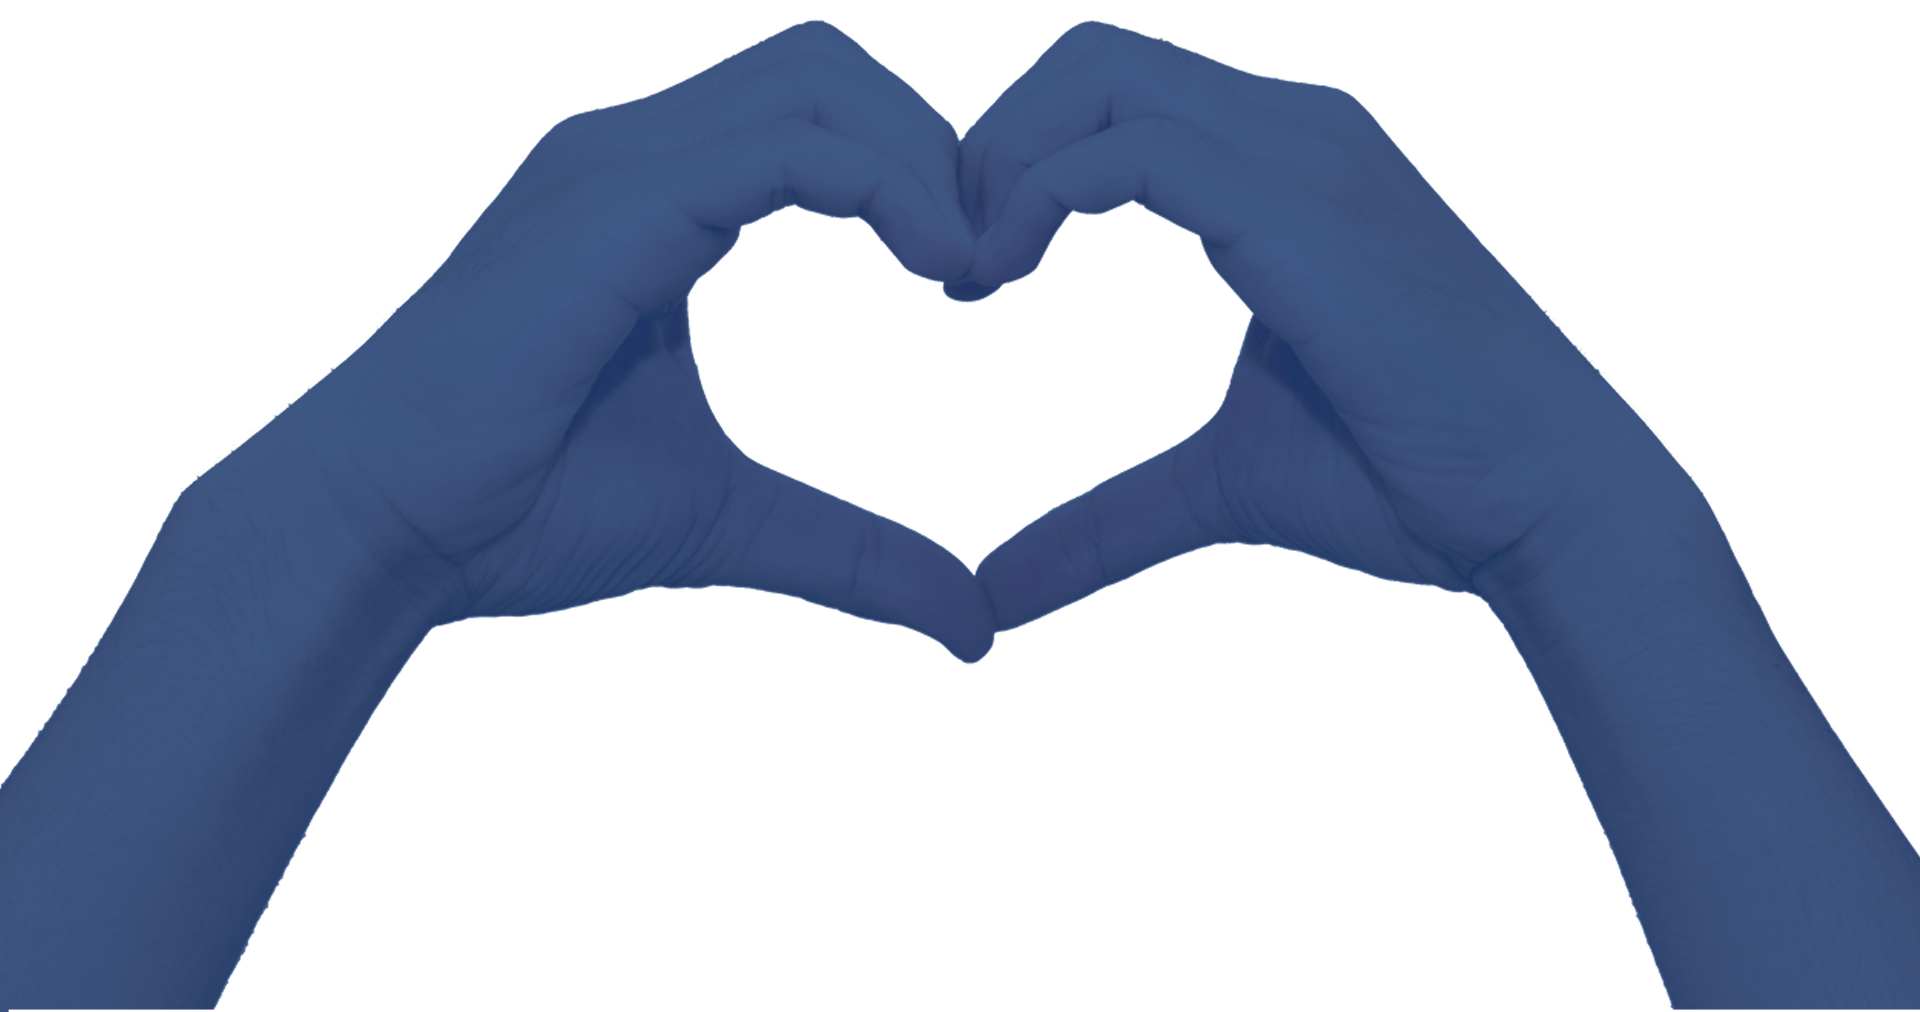 For the Love of Data, written in the middle of two hands forming a heart shape